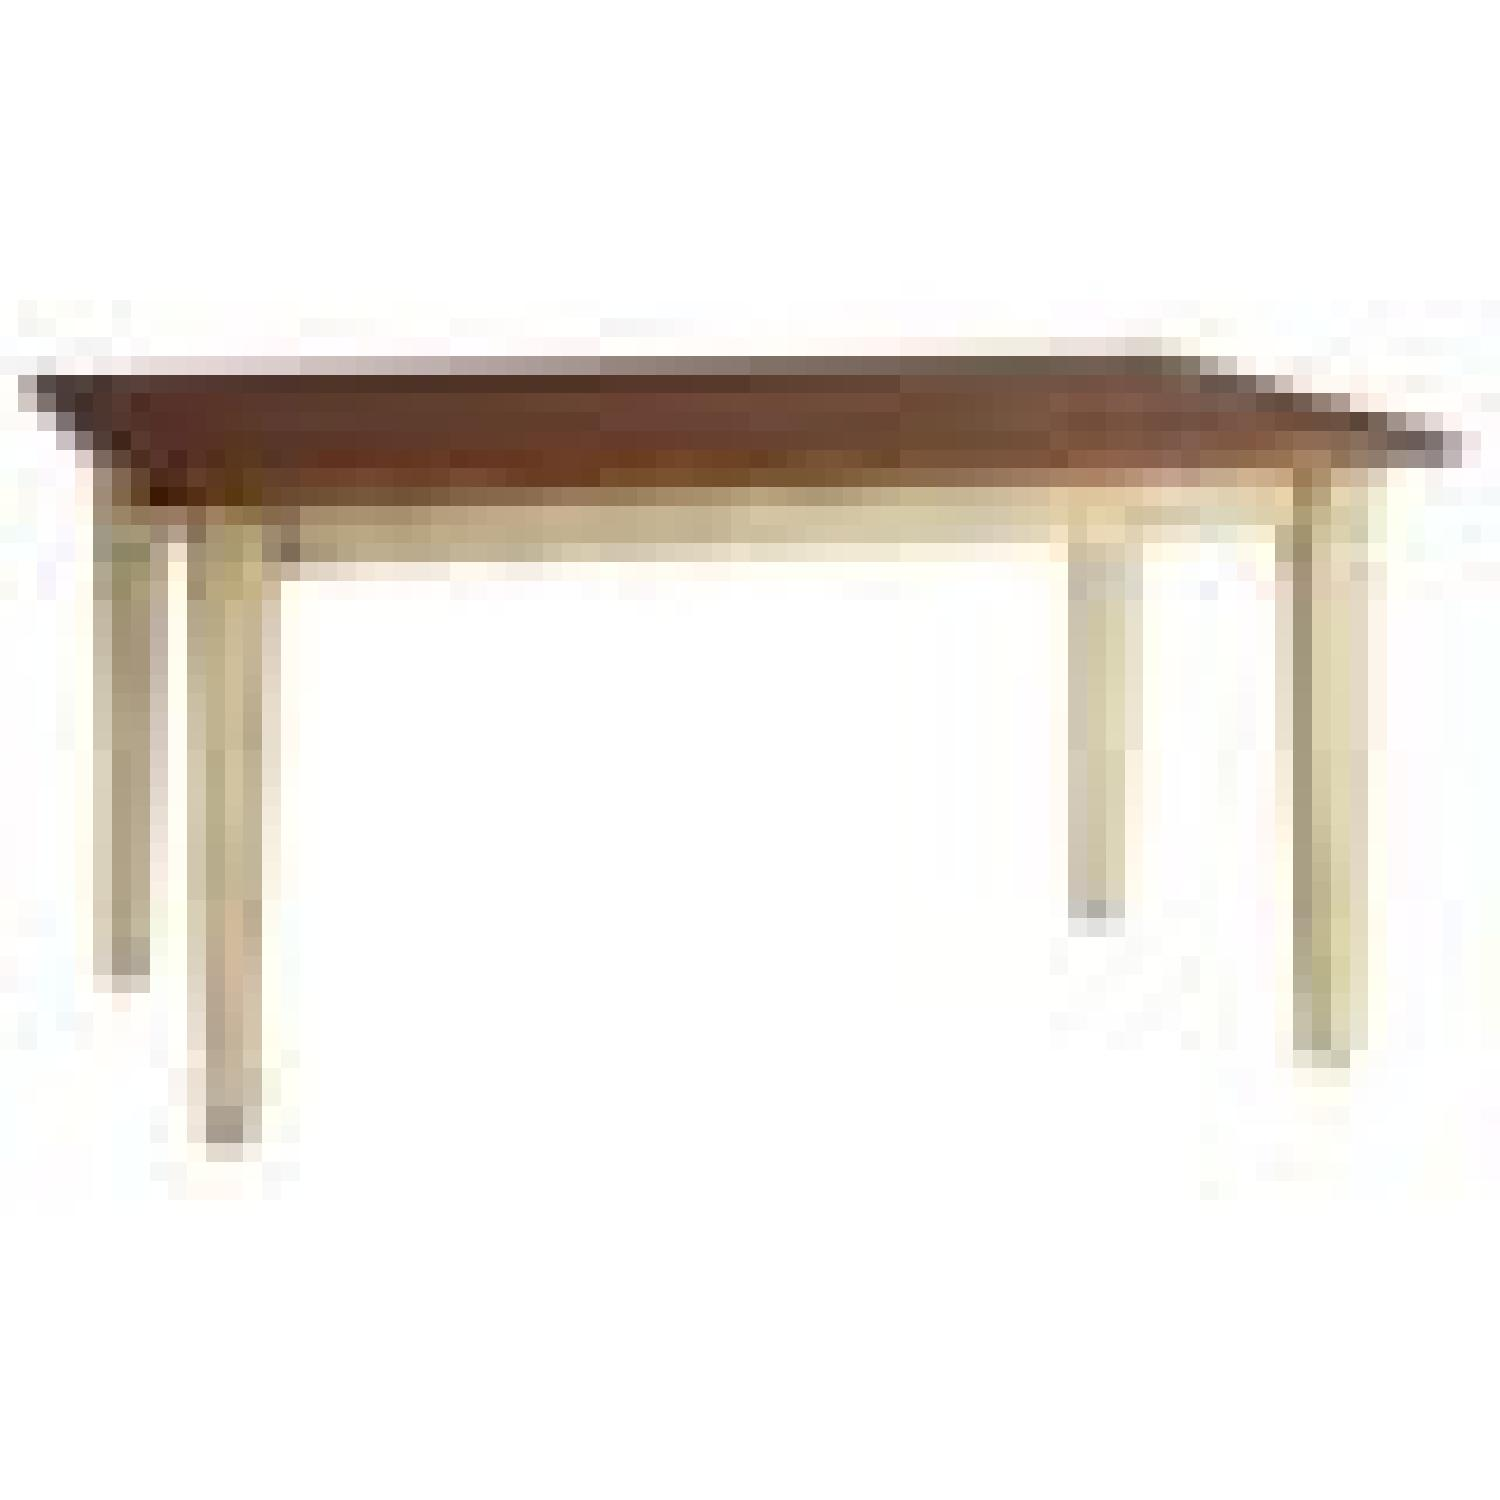 Pier 1 Dining Table in Antique Ivory - image-0